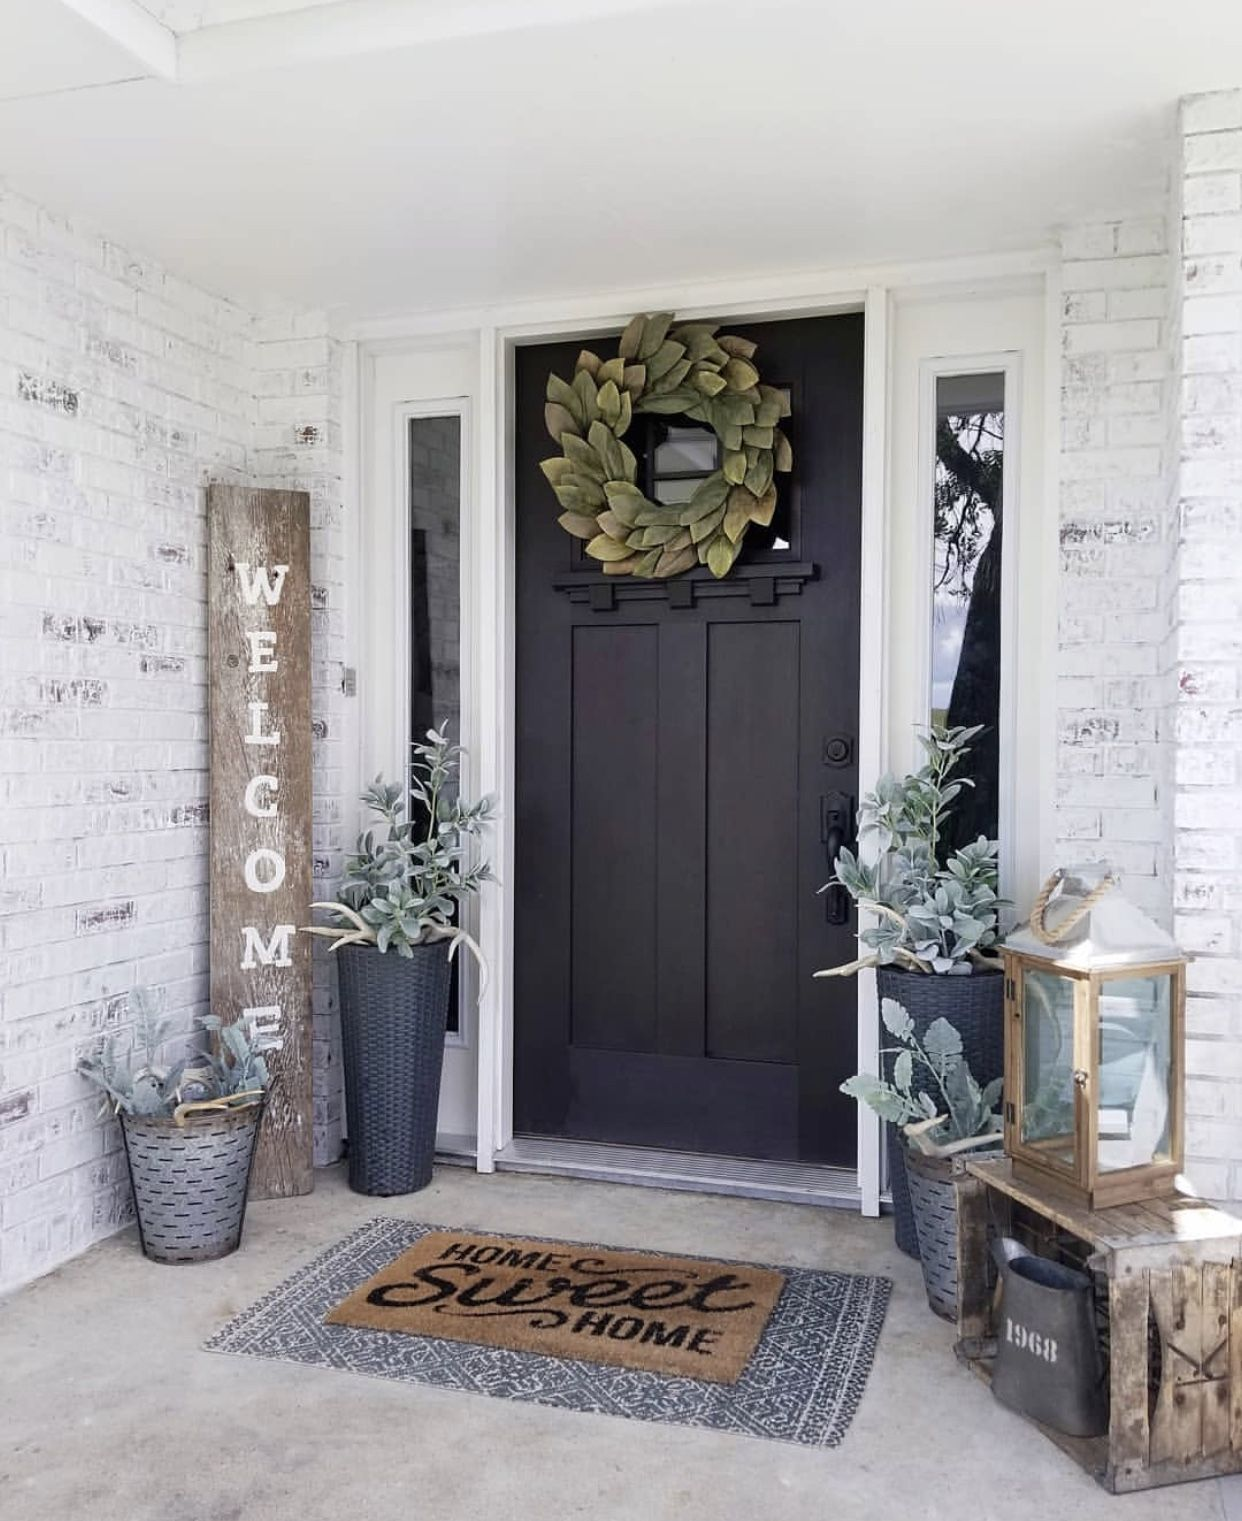 Mew Black Front Door Modern Farmhouse Decor Front Porch